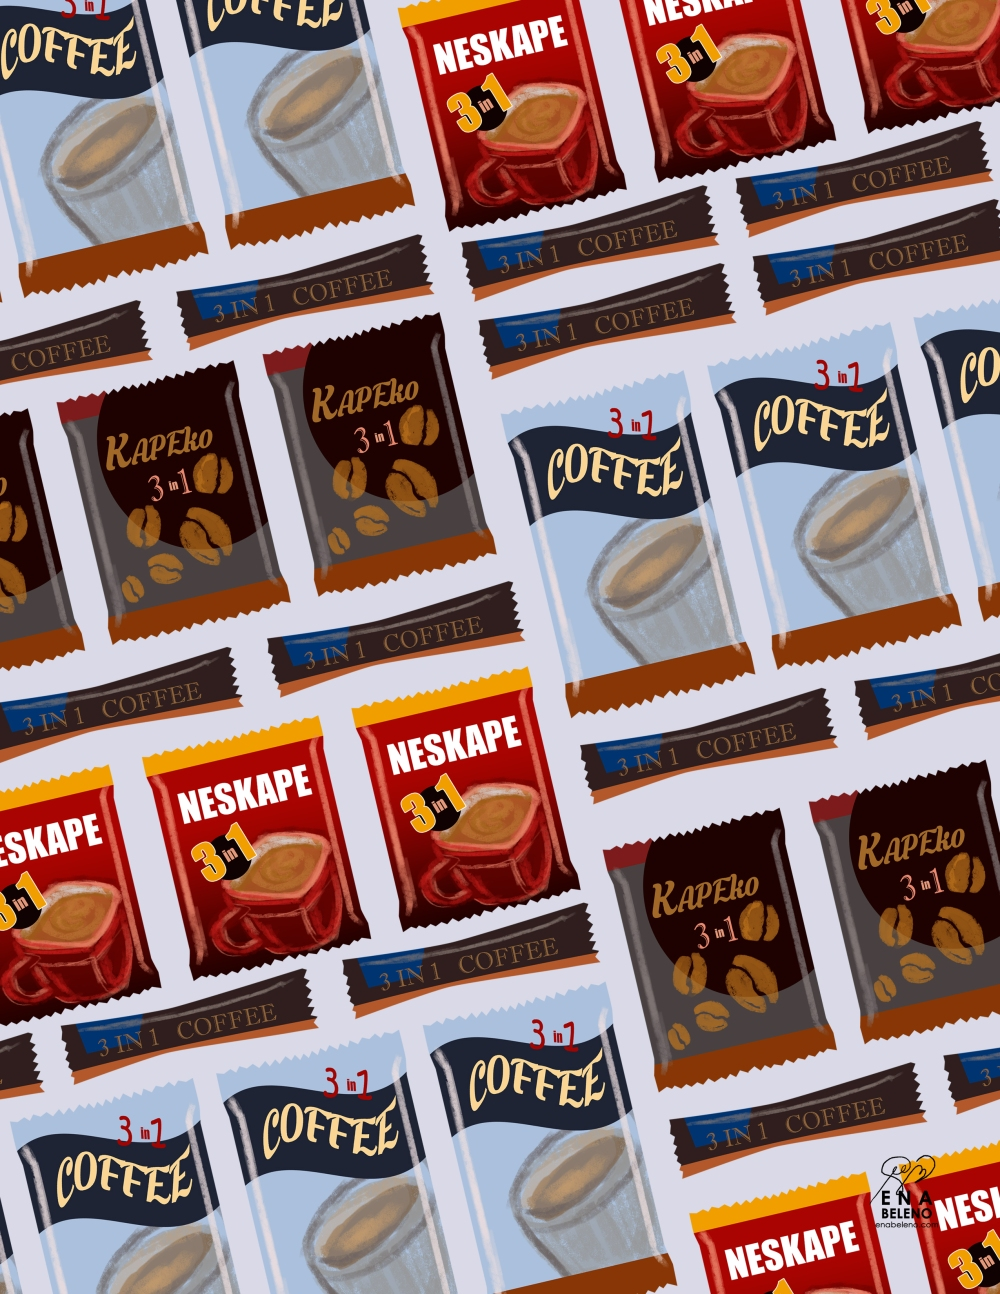 personal project 3 in 1 coffee brands